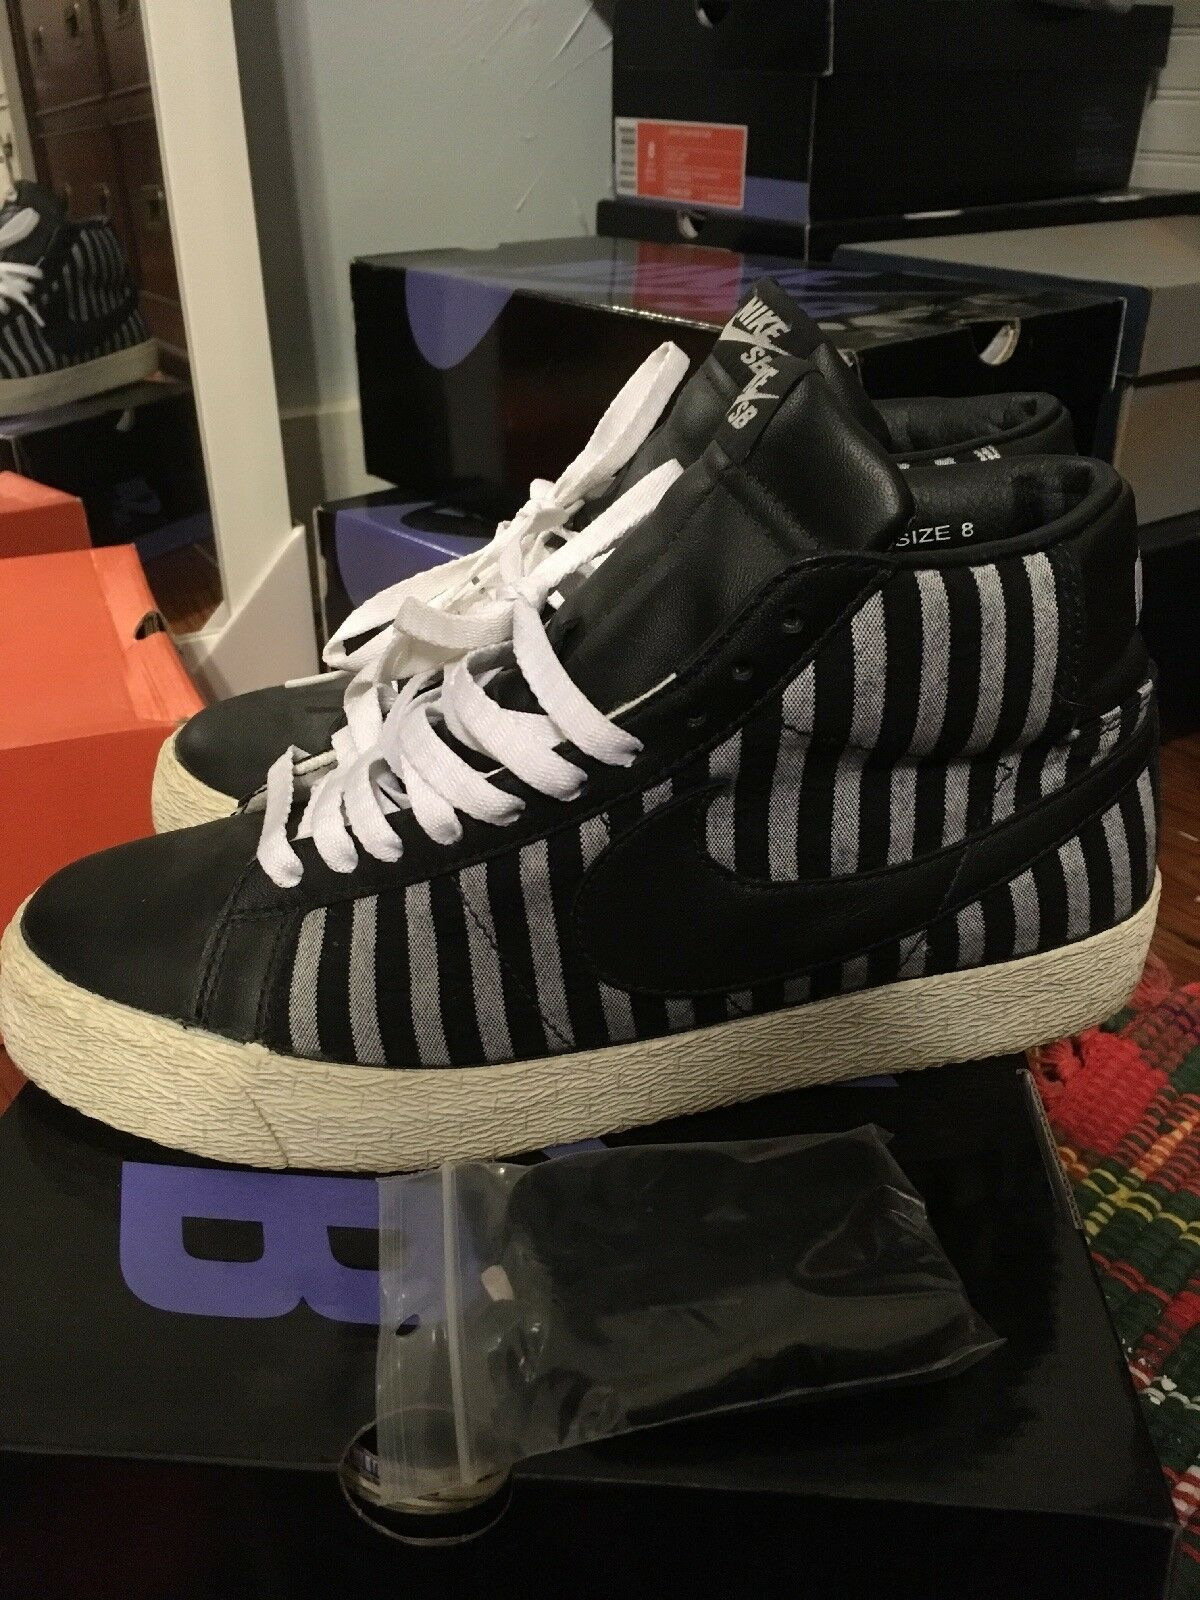 Nike Sb Blazer Striped Pack From 2006 Sz 8